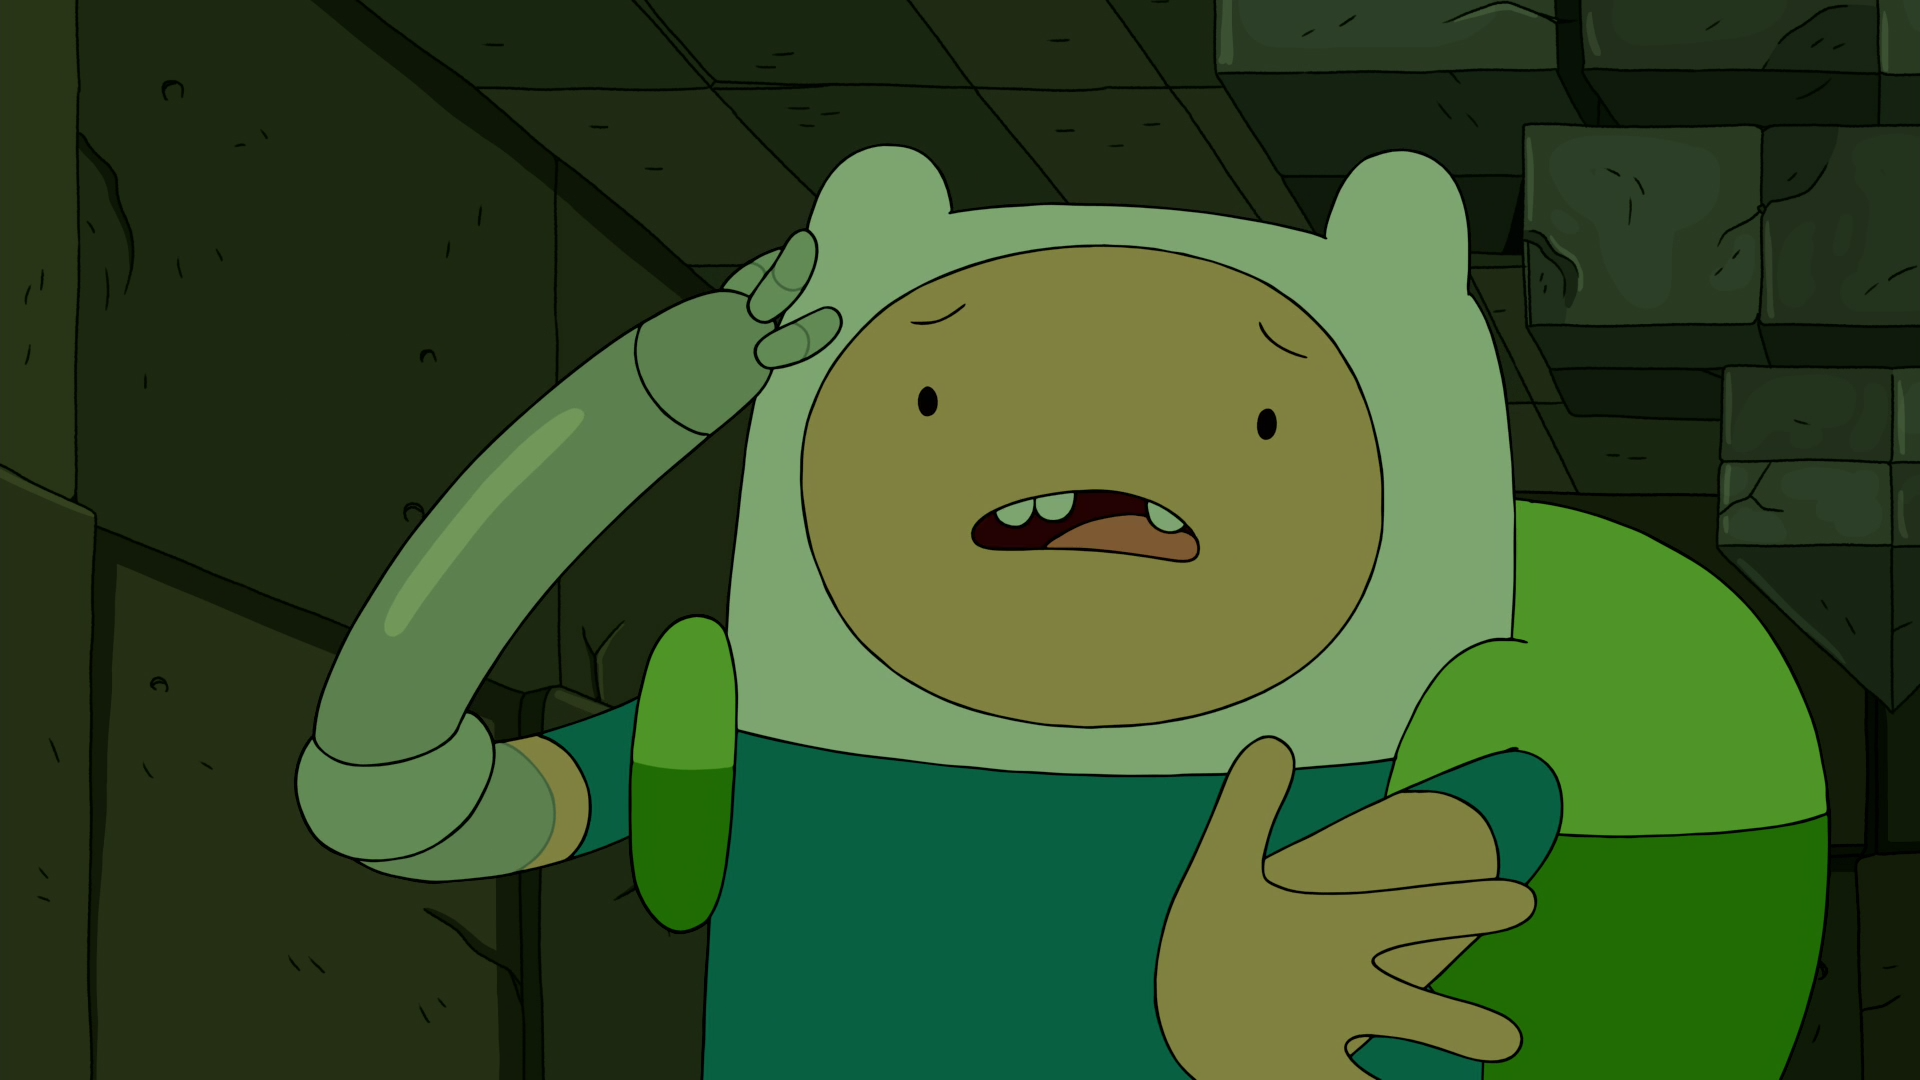 S8e28 What (Question Mark)! Fern, what about Jake, BMO -- my home(Question Mark)